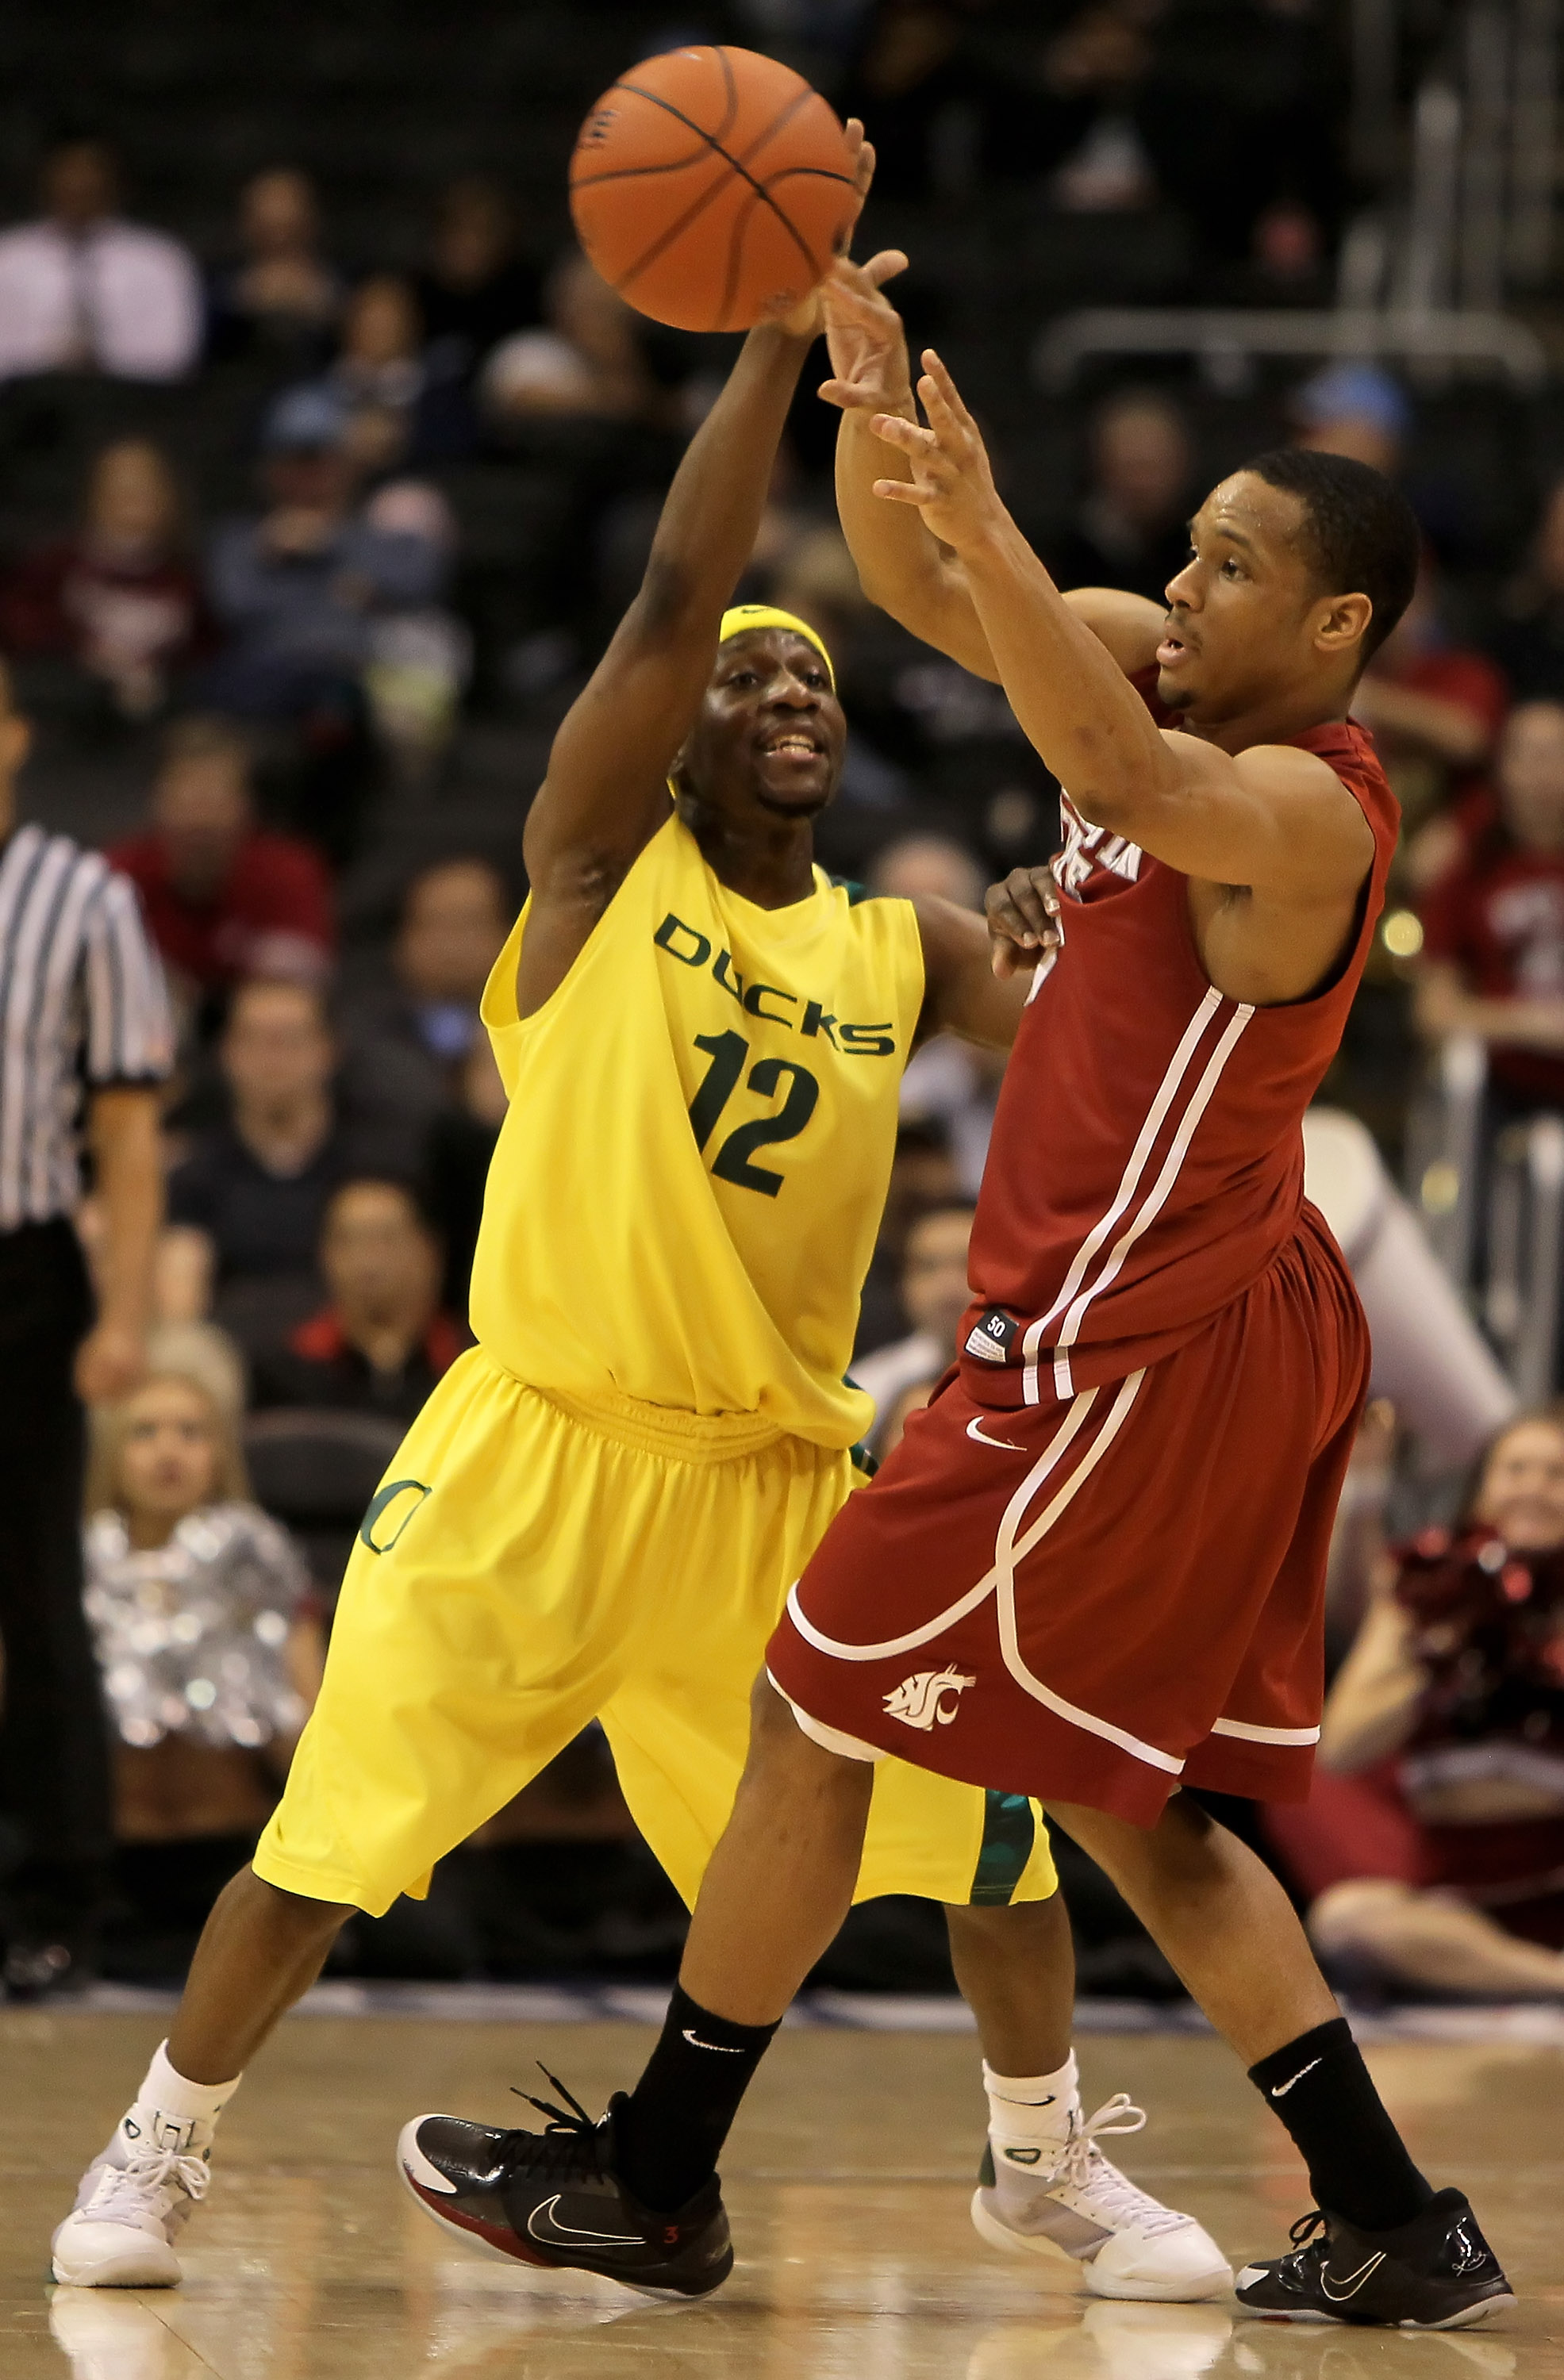 LOS ANGELES, CA - MARCH 10:  Reggie Moore #3 of the Washington State Cougars is defended by Tajuan Porter #12 of the Oregon Ducks in the second half during the first round of the Pac-10 Basketball Tournament at Staples Center on March 10, 2010 in Los Ange